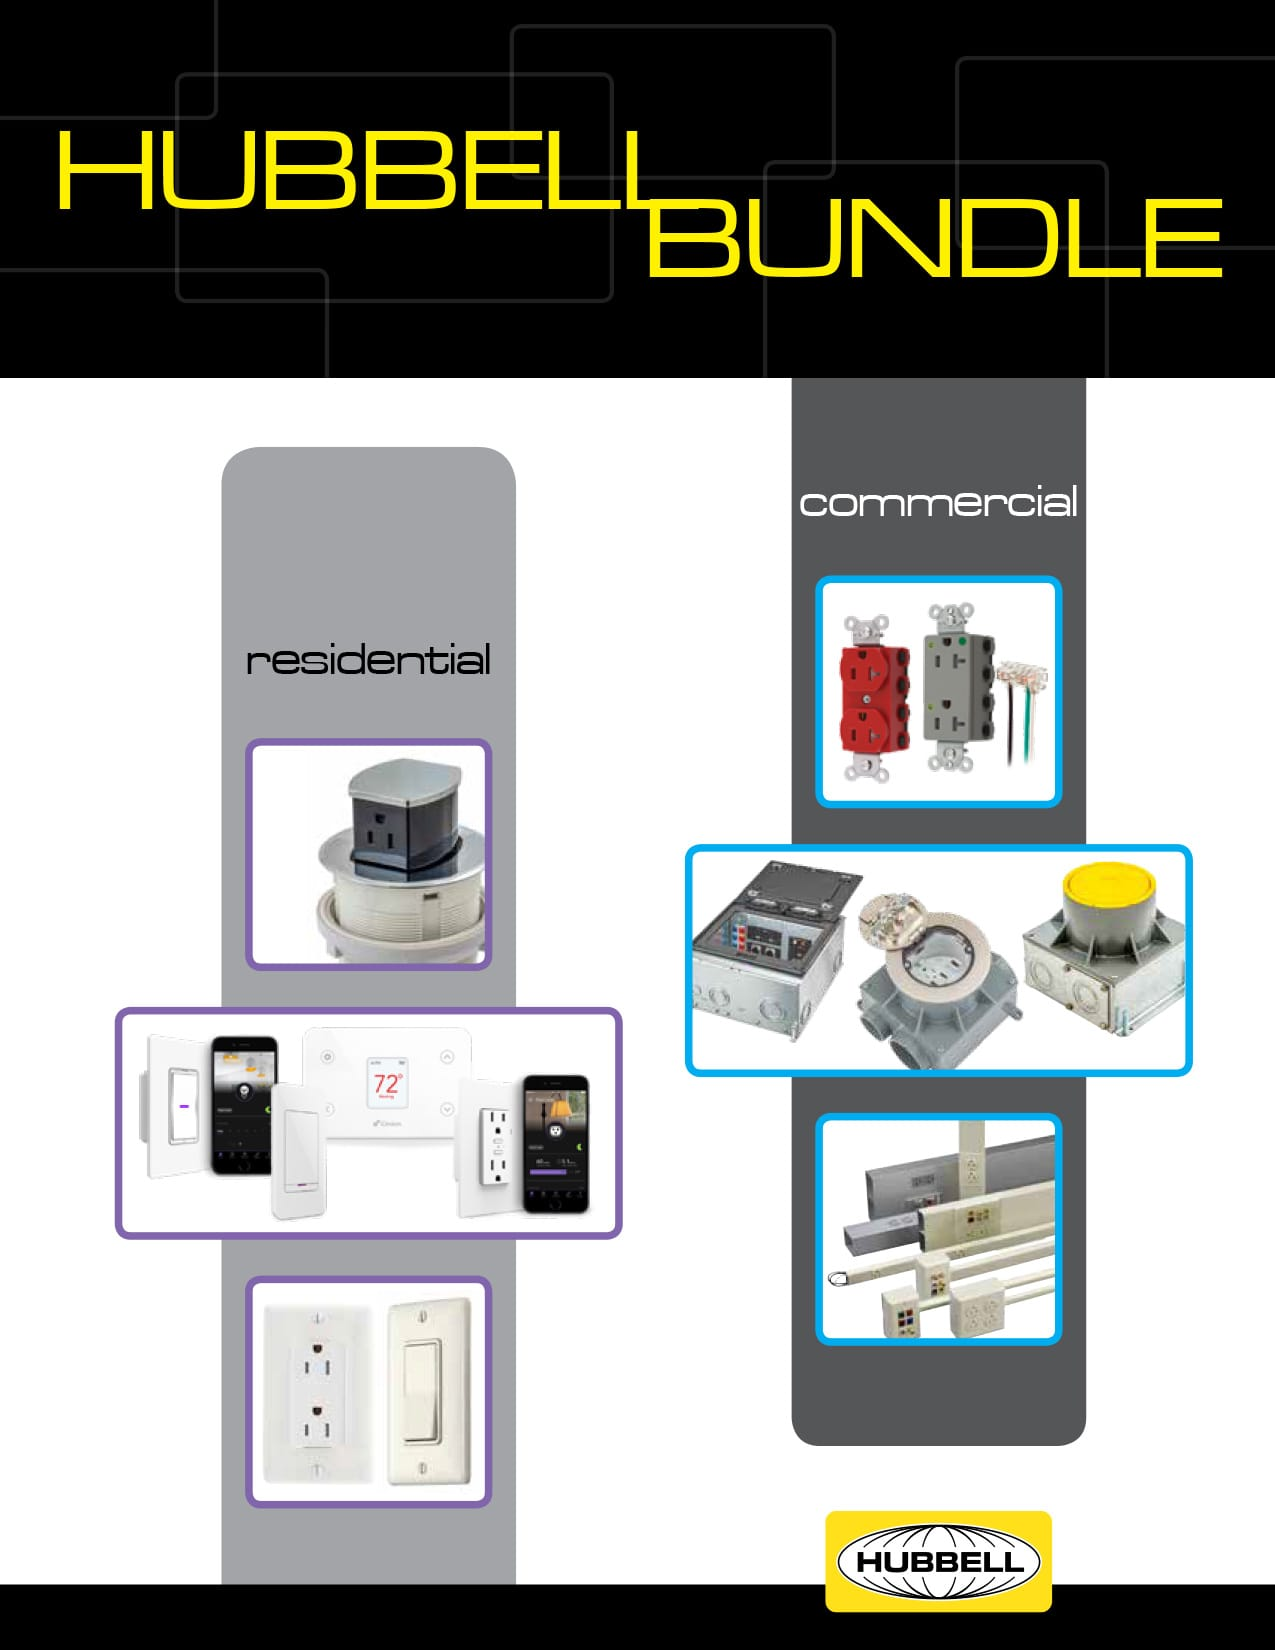 Commercial and Residential Hubbell Bundle